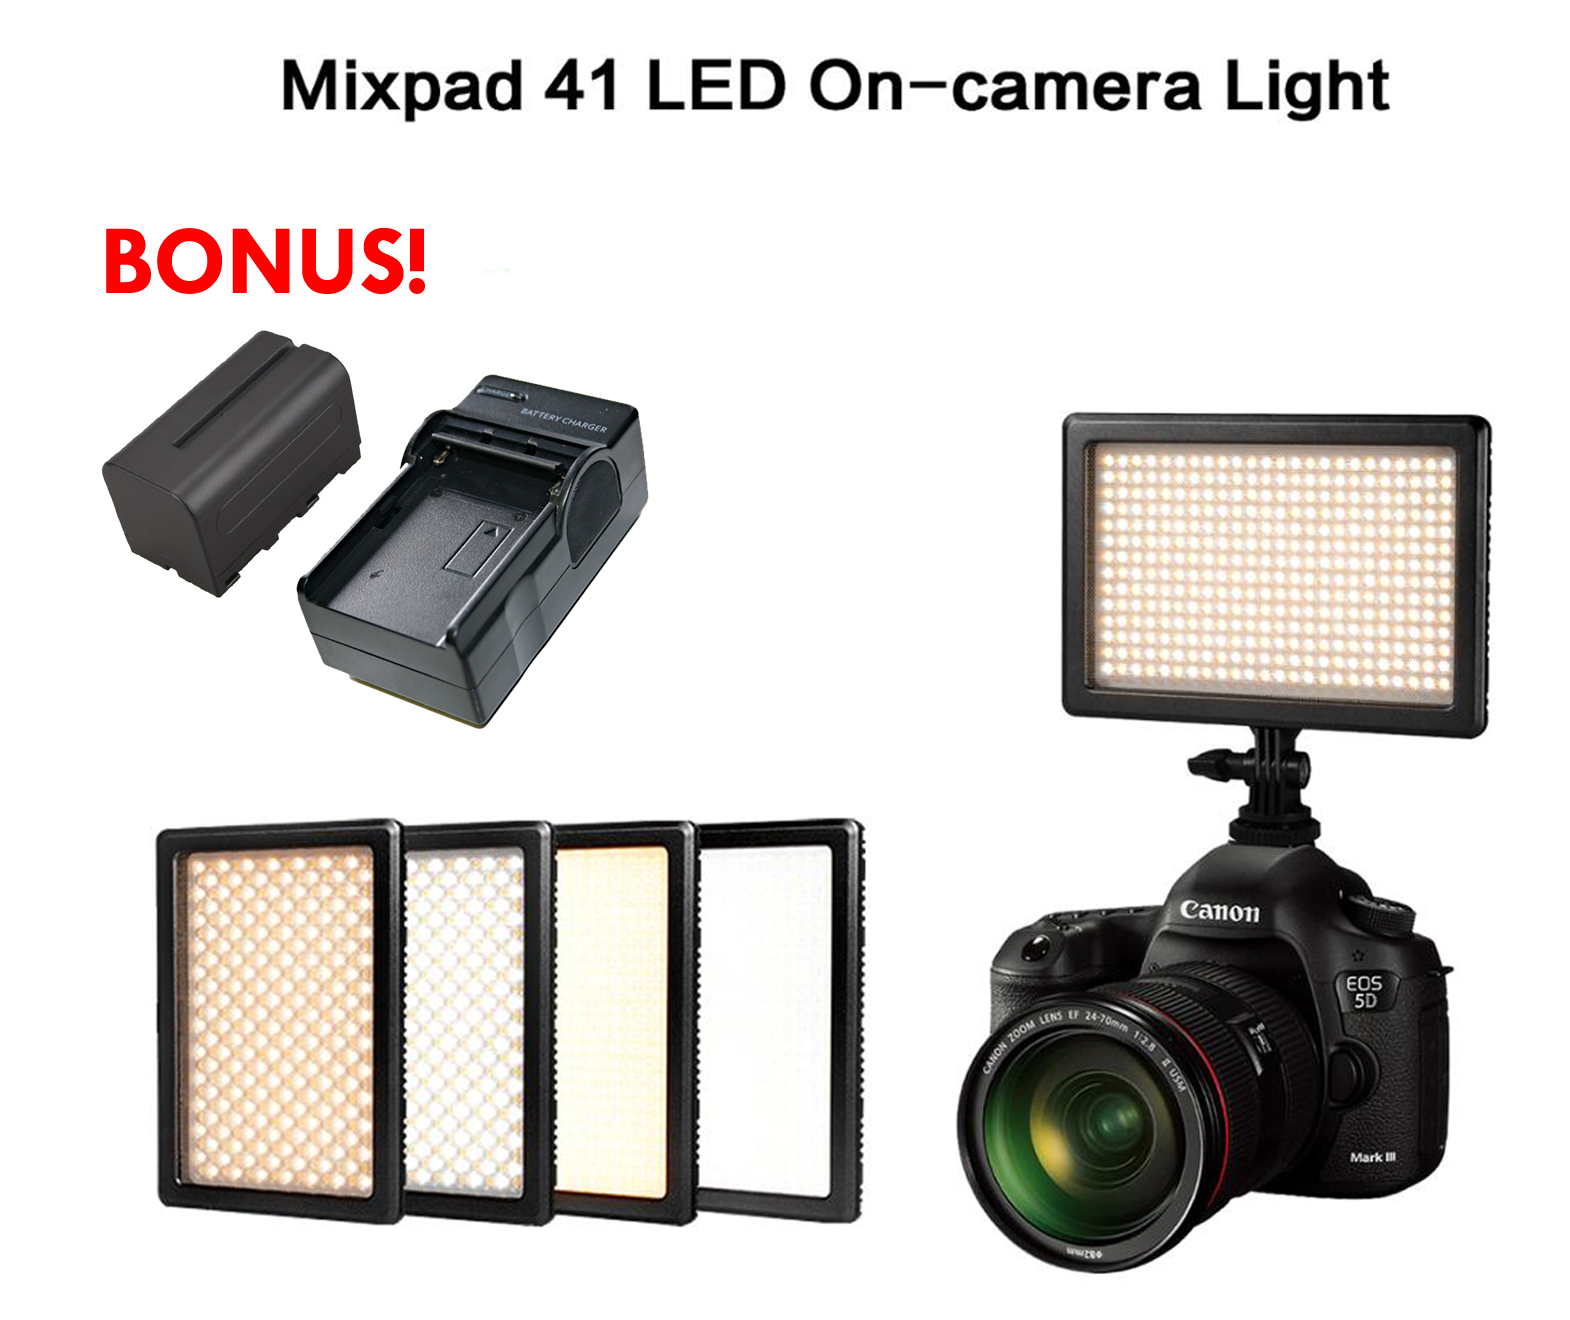 Nanguang CN-MIXPAD41 (Mixpad 41) ULTRA SLIM 440 LED + LEM VIDEO LIGHT